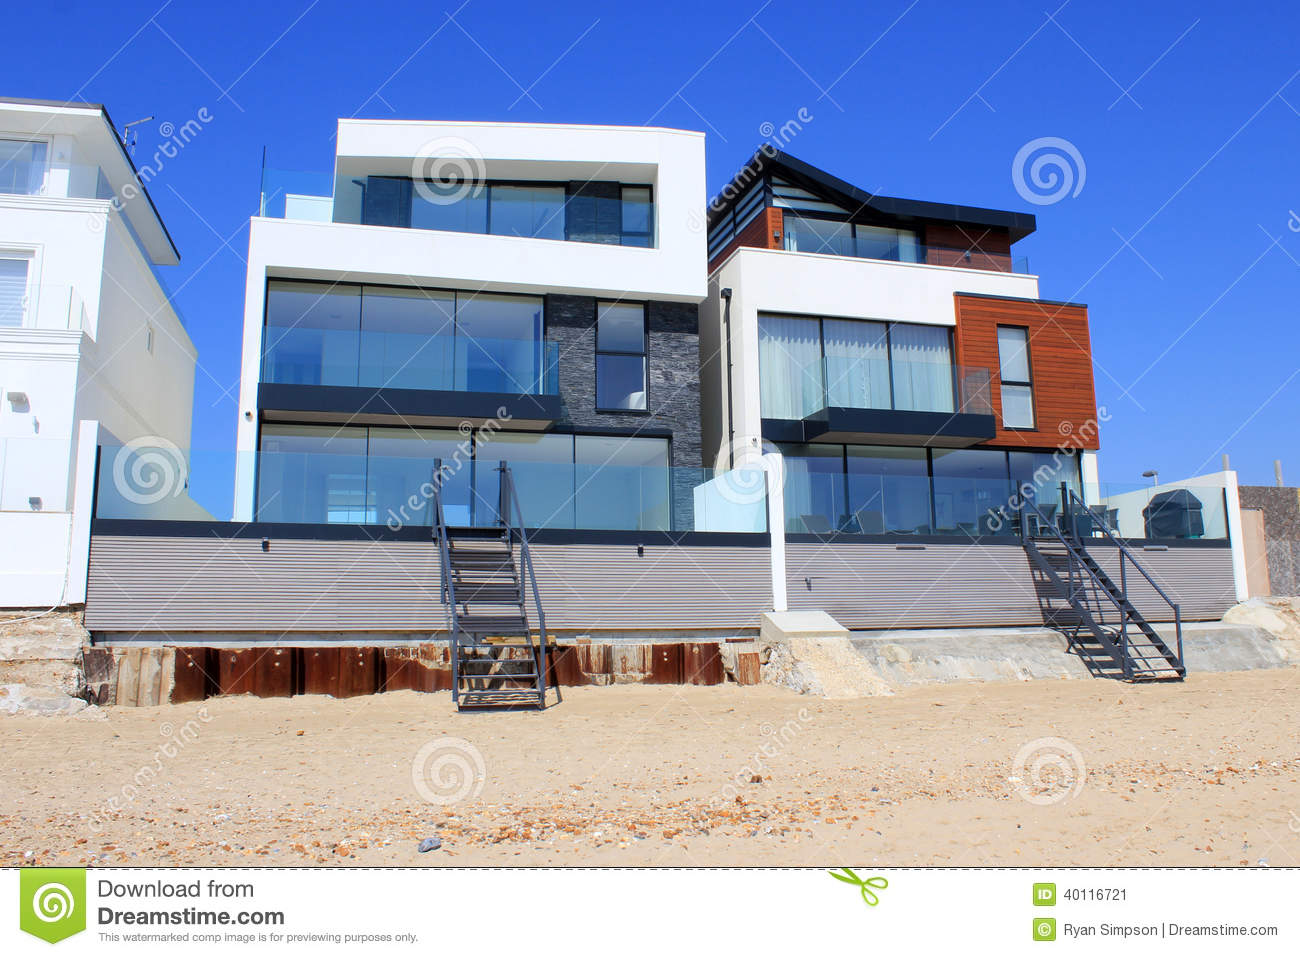 Luxury modern beach homes stock image. Image of sunny - 40116721 on modern cottages, contemporary homes, modern gated homes, coastal homes, modern home homes, modern park homes, modern alexander homes, modern home texture, modern celebrity homes, modern water homes, beautiful caribbean homes, miami modern homes, mid century modern homes, modern hut homes, modern apartments, modern mountain homes, luxury homes, modern mansions, modern winter homes, modern box homes,